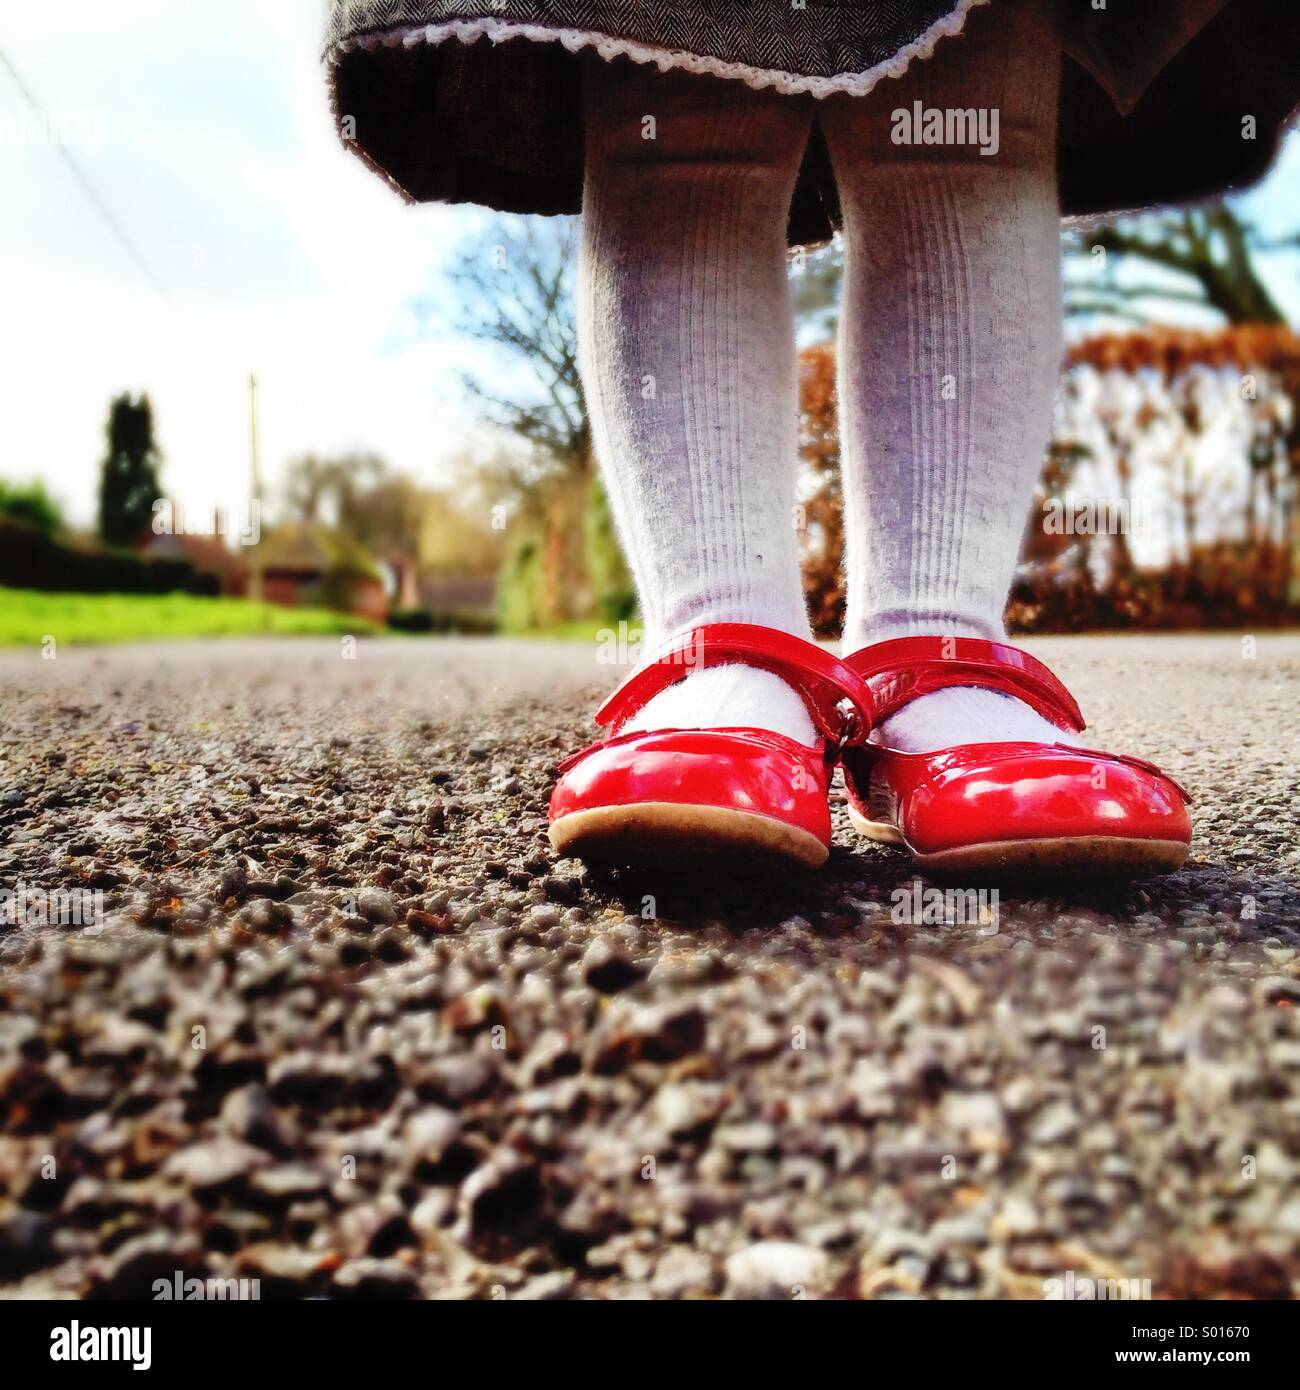 Girl in red shoes Photo Stock